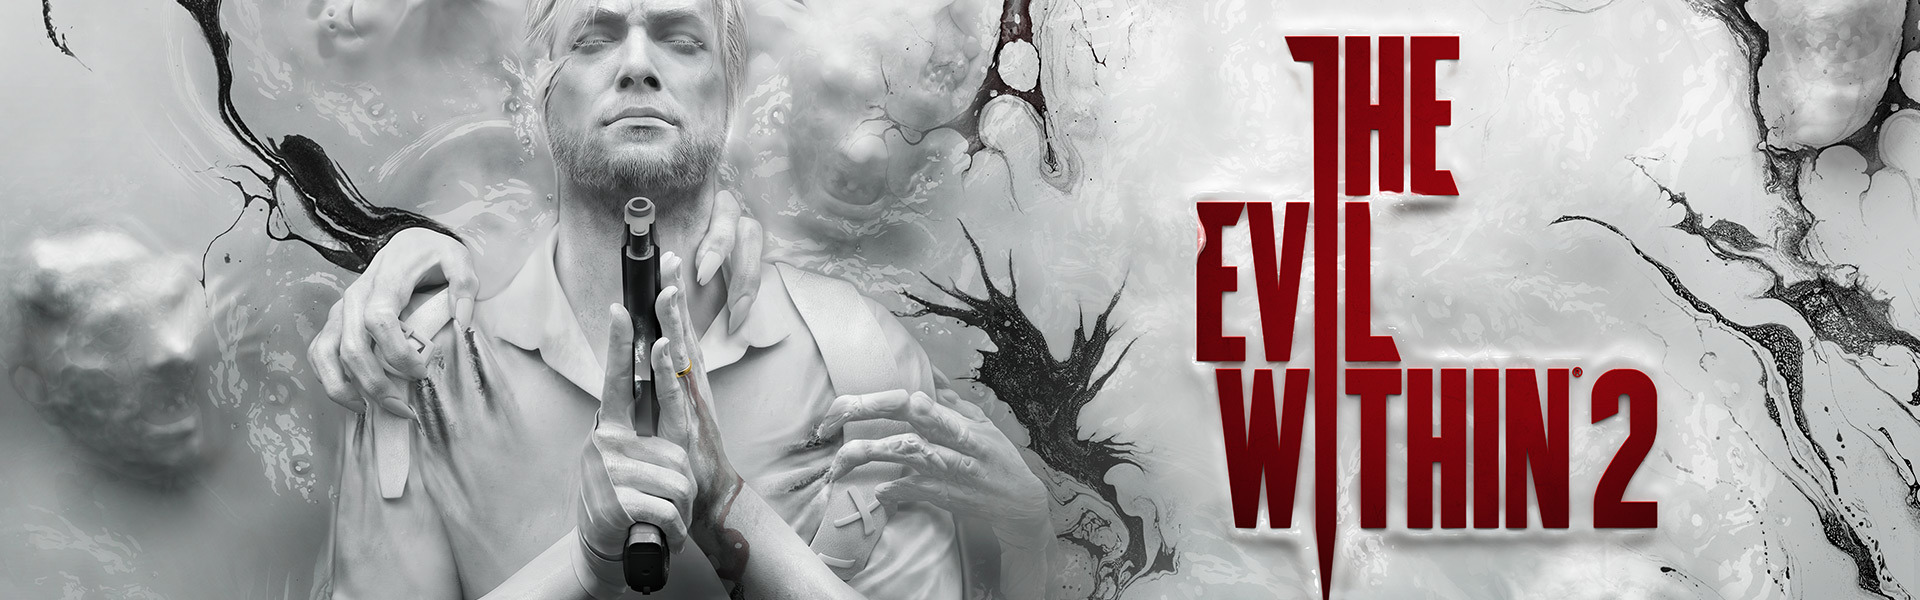 Evil Within 2 – hrdina